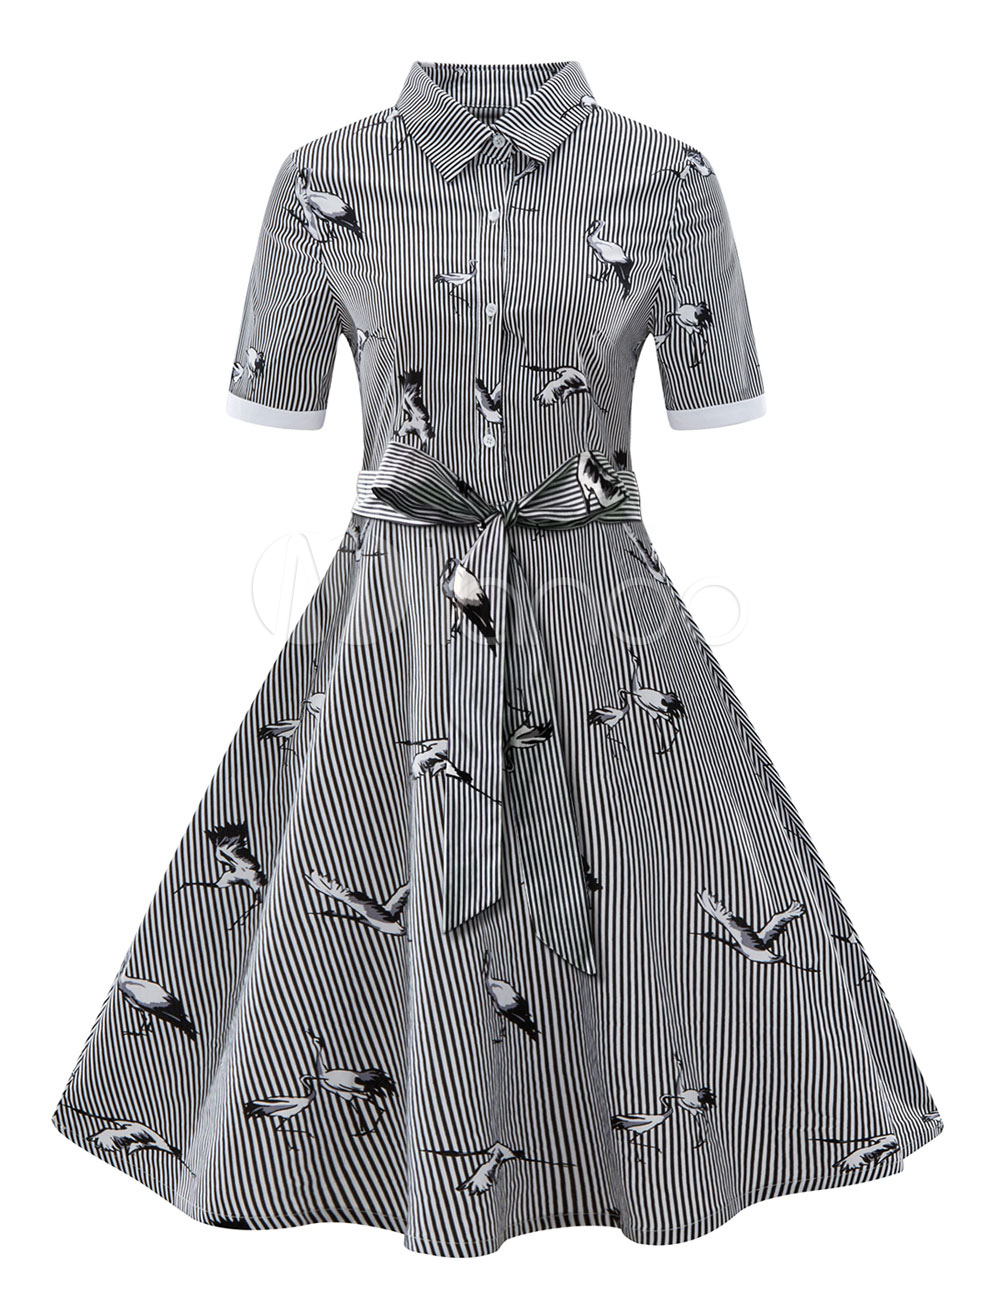 Buy Vintage Shirt Dress 1950s Black Short Sleeve Striped Animal Print Sash Summer Dress for $26.34 in Milanoo store